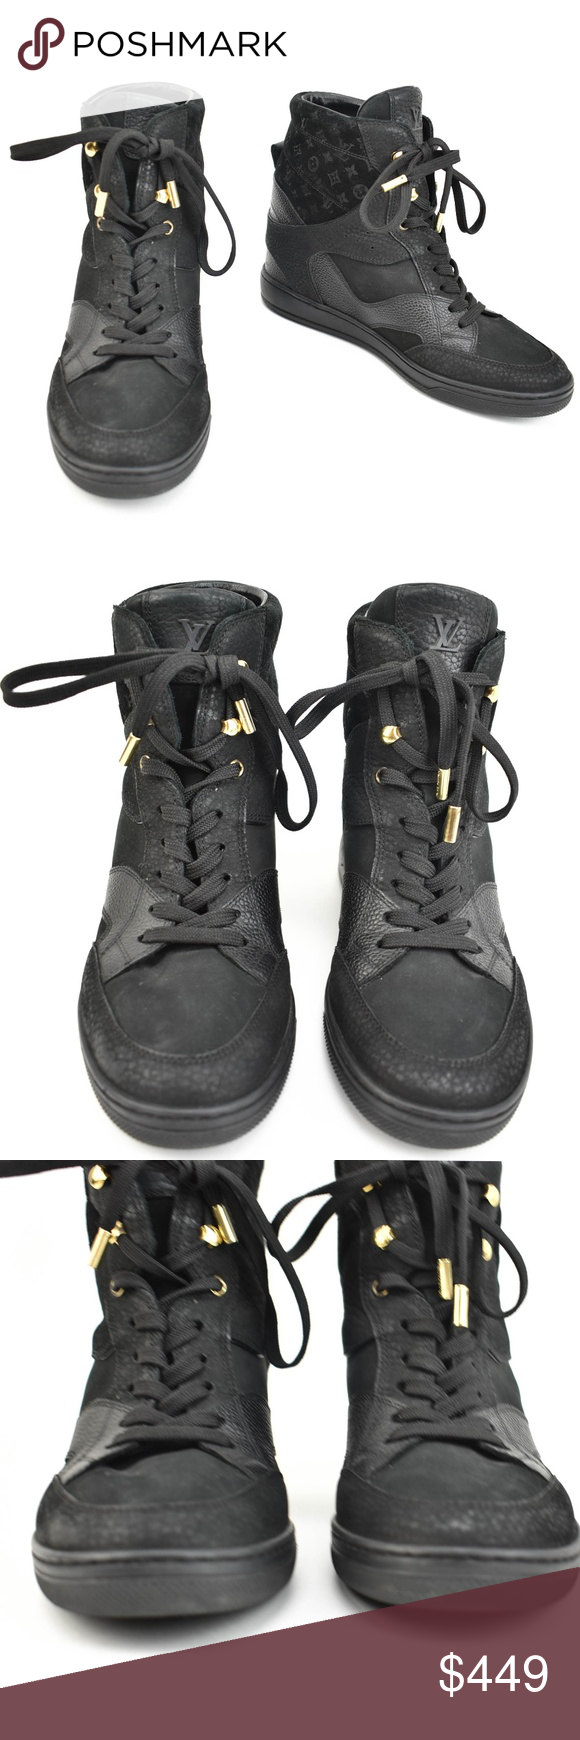 c8059716a726 Spotted while shopping on Poshmark  LOUIS VUITTON Black Leather LV Logo  Hi-Top Sneaker